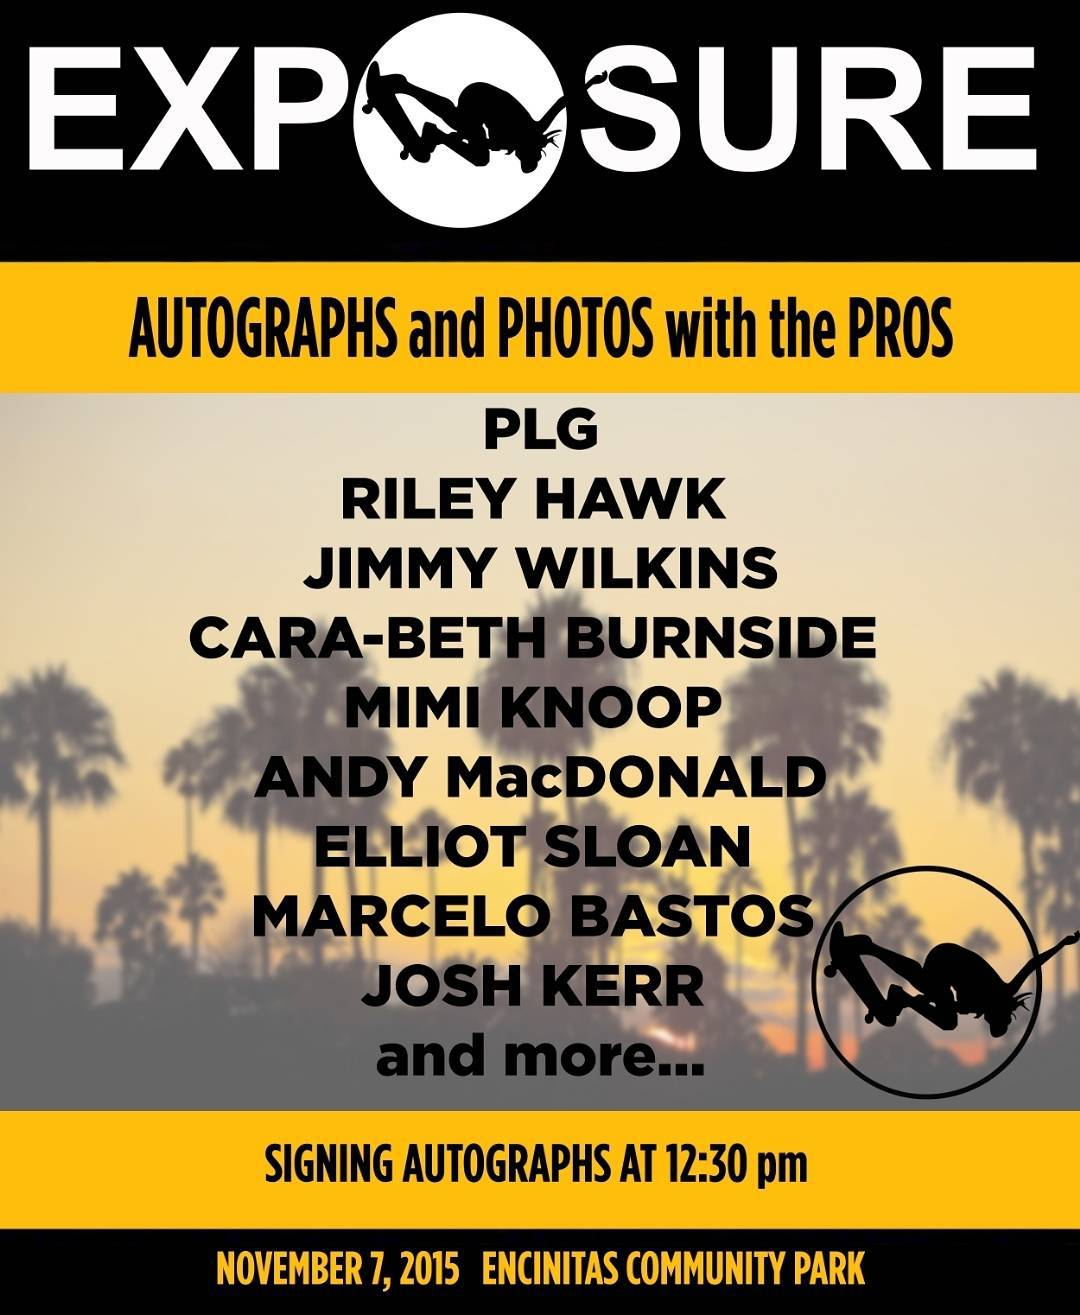 We are grateful to have the likes of these amazing skaters and surfers signing autographs at #exposure2015! @plg @jimmy_wilkins @carabethburnside @mimiknoop @andymac720 @elliotsloan @marcelobastosk8 @josh_kerr84 , thank you all for donating your time...